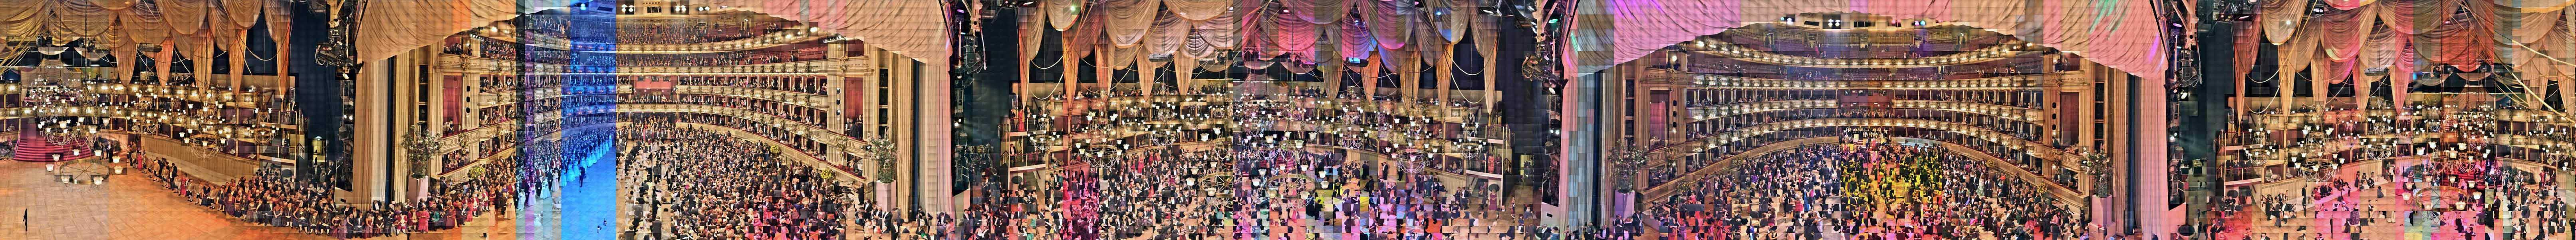 Vienna MMIX – Panorama portrait of a society:  7000 Participants,  10008 Images, one every 3 seconds.  Recorded with 2 interactive network cameras over the entire lenth of the evening from 20:32 – 05:17. Assembled in chronological order. Vienna Opera Ball 2009